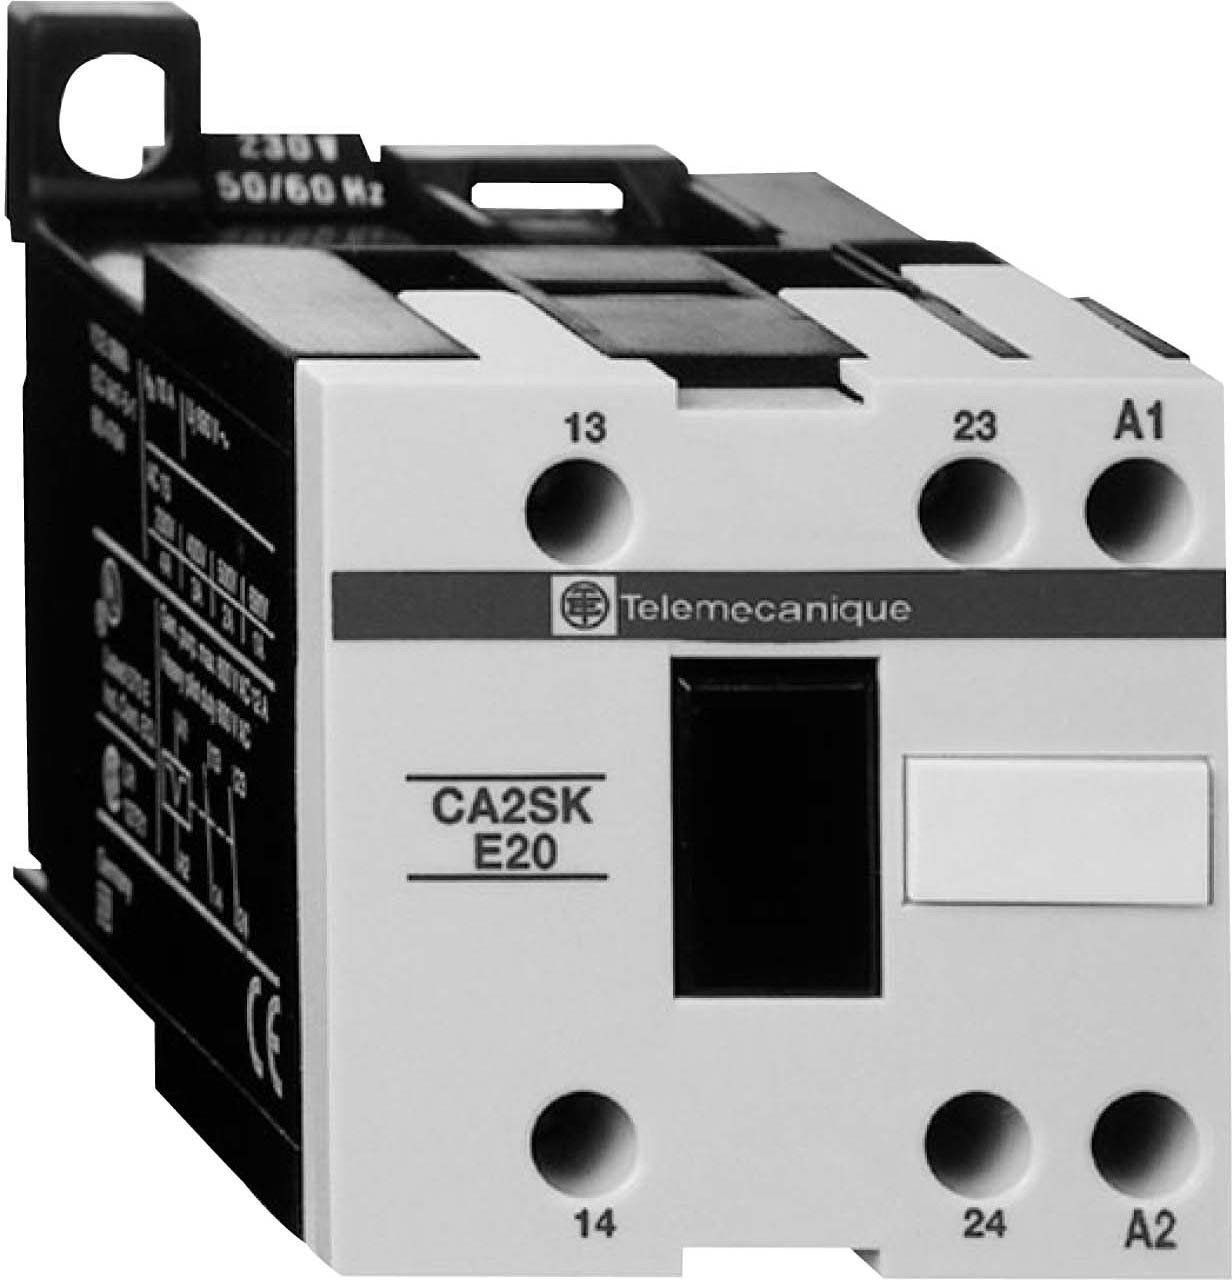 Midwest Control CA2SKE20-T7 Super beauty product restock quality top! Schneider Relay Electric Alternating Max 67% OFF